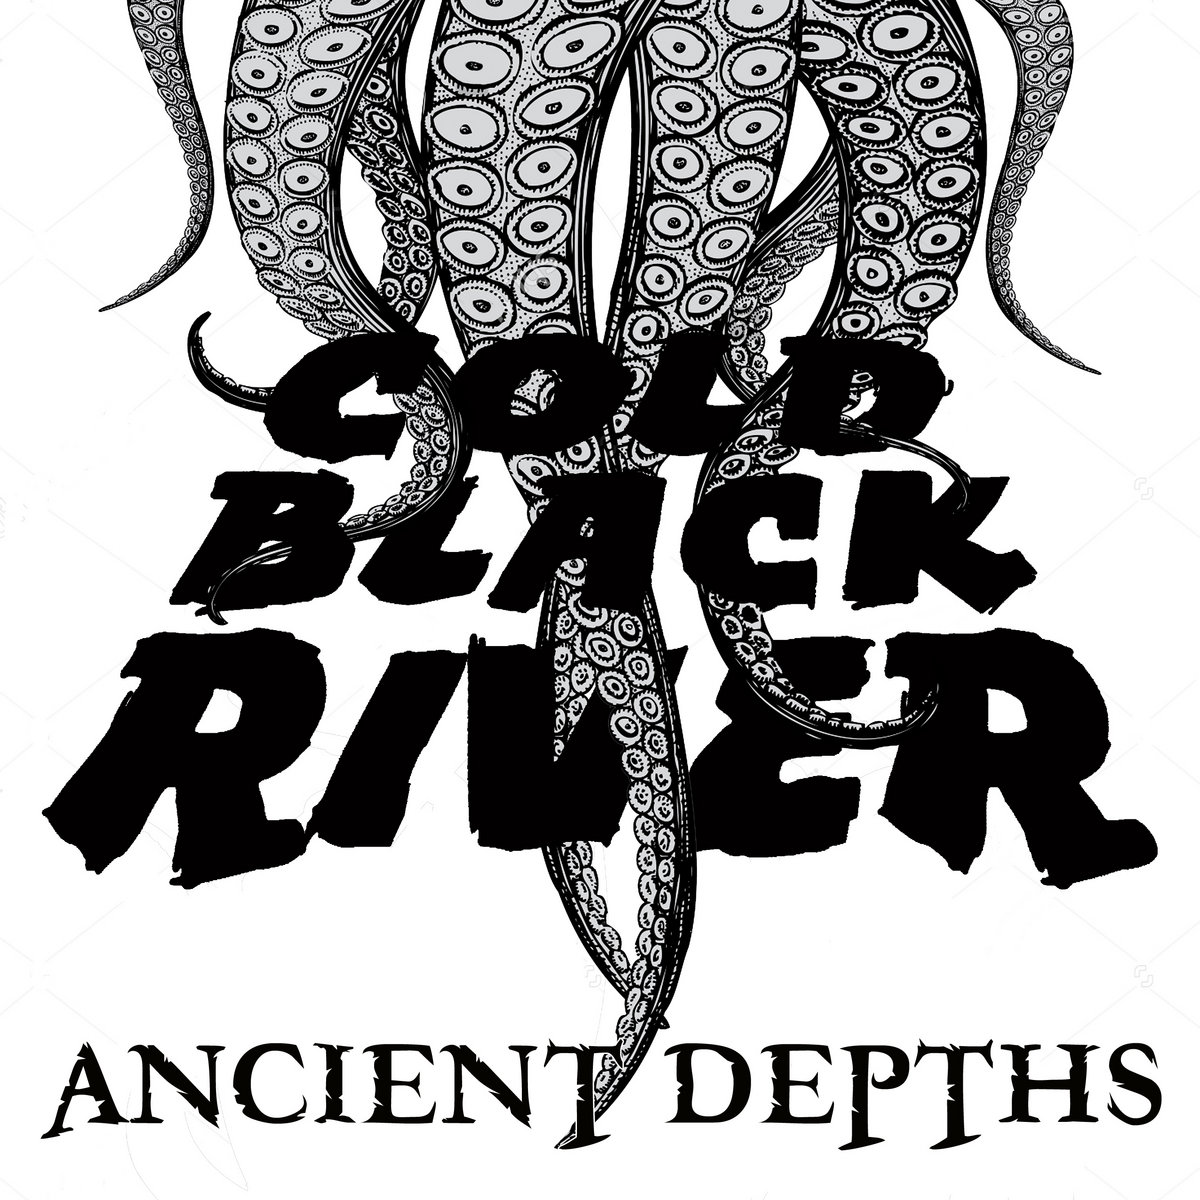 Cold Black River Image